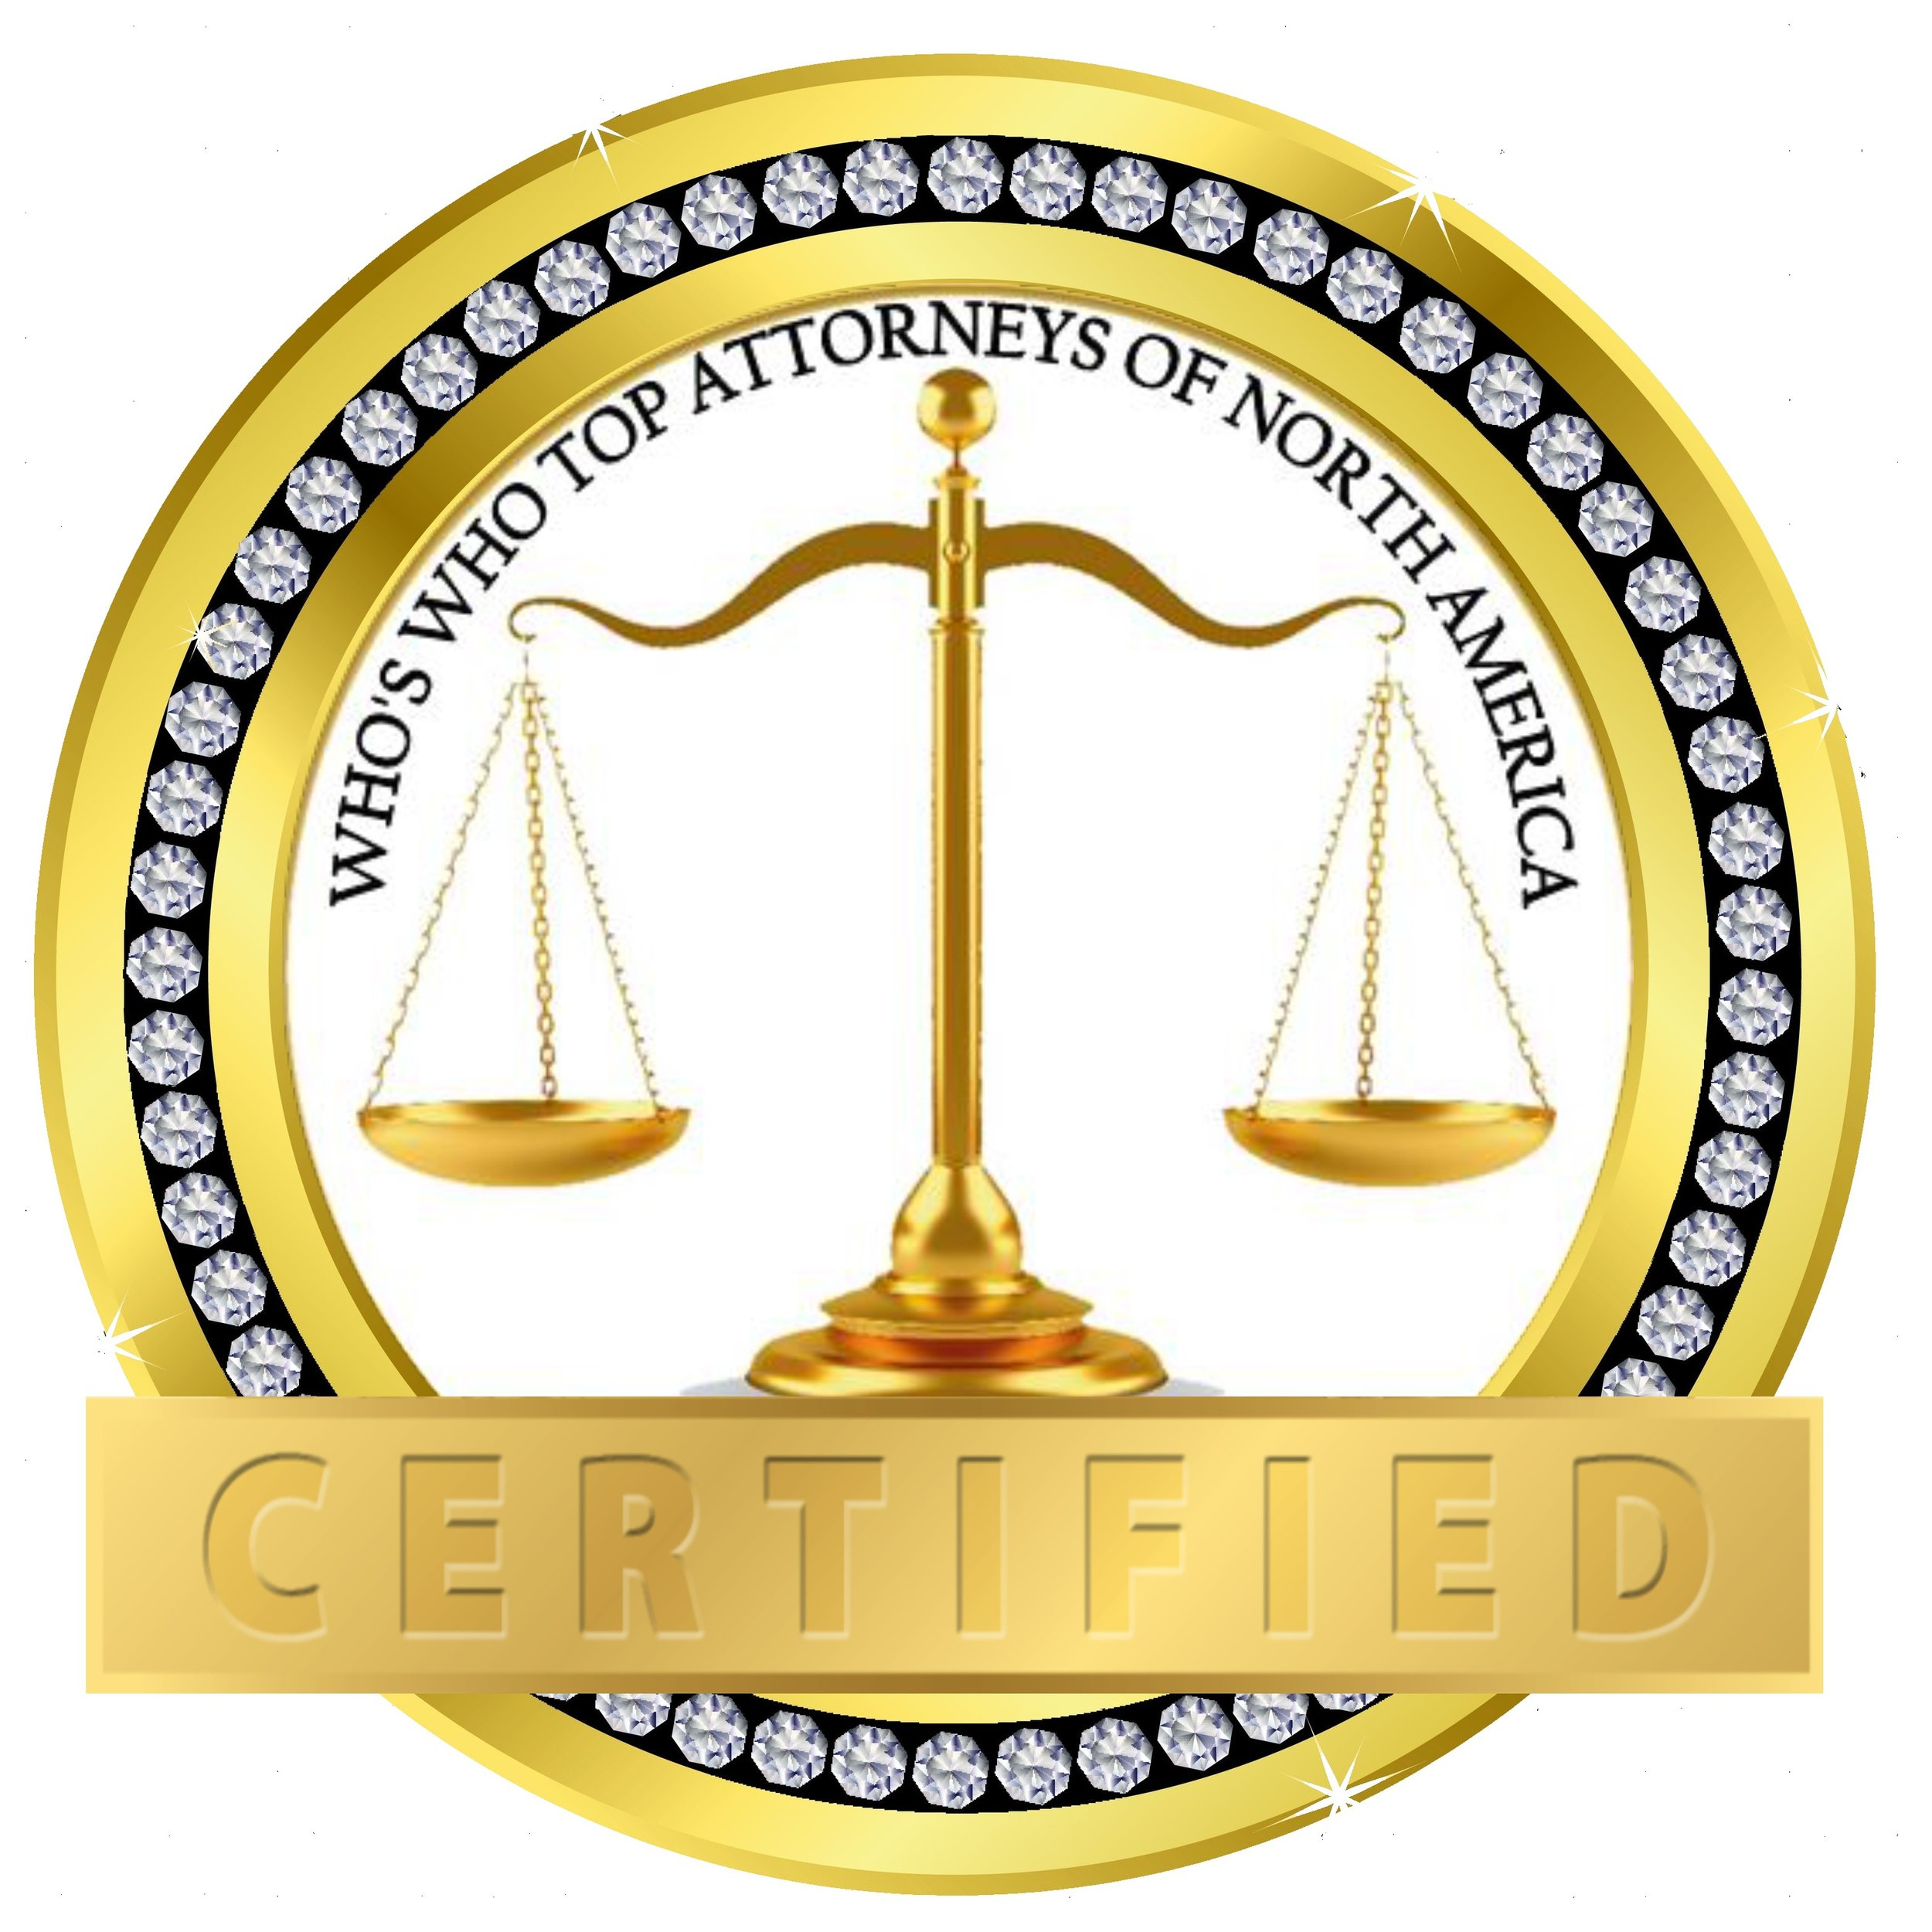 Our Success Ratio Is Growing Daily. - For the last 15 years, we've litigated some of the toughest battles with success to more than a thousand clients. Not only are we extremely skilled in multiple court settings, our success ratio is growing every day.We're proud to announce that Greg C. Gorodetsky has been inducted into the